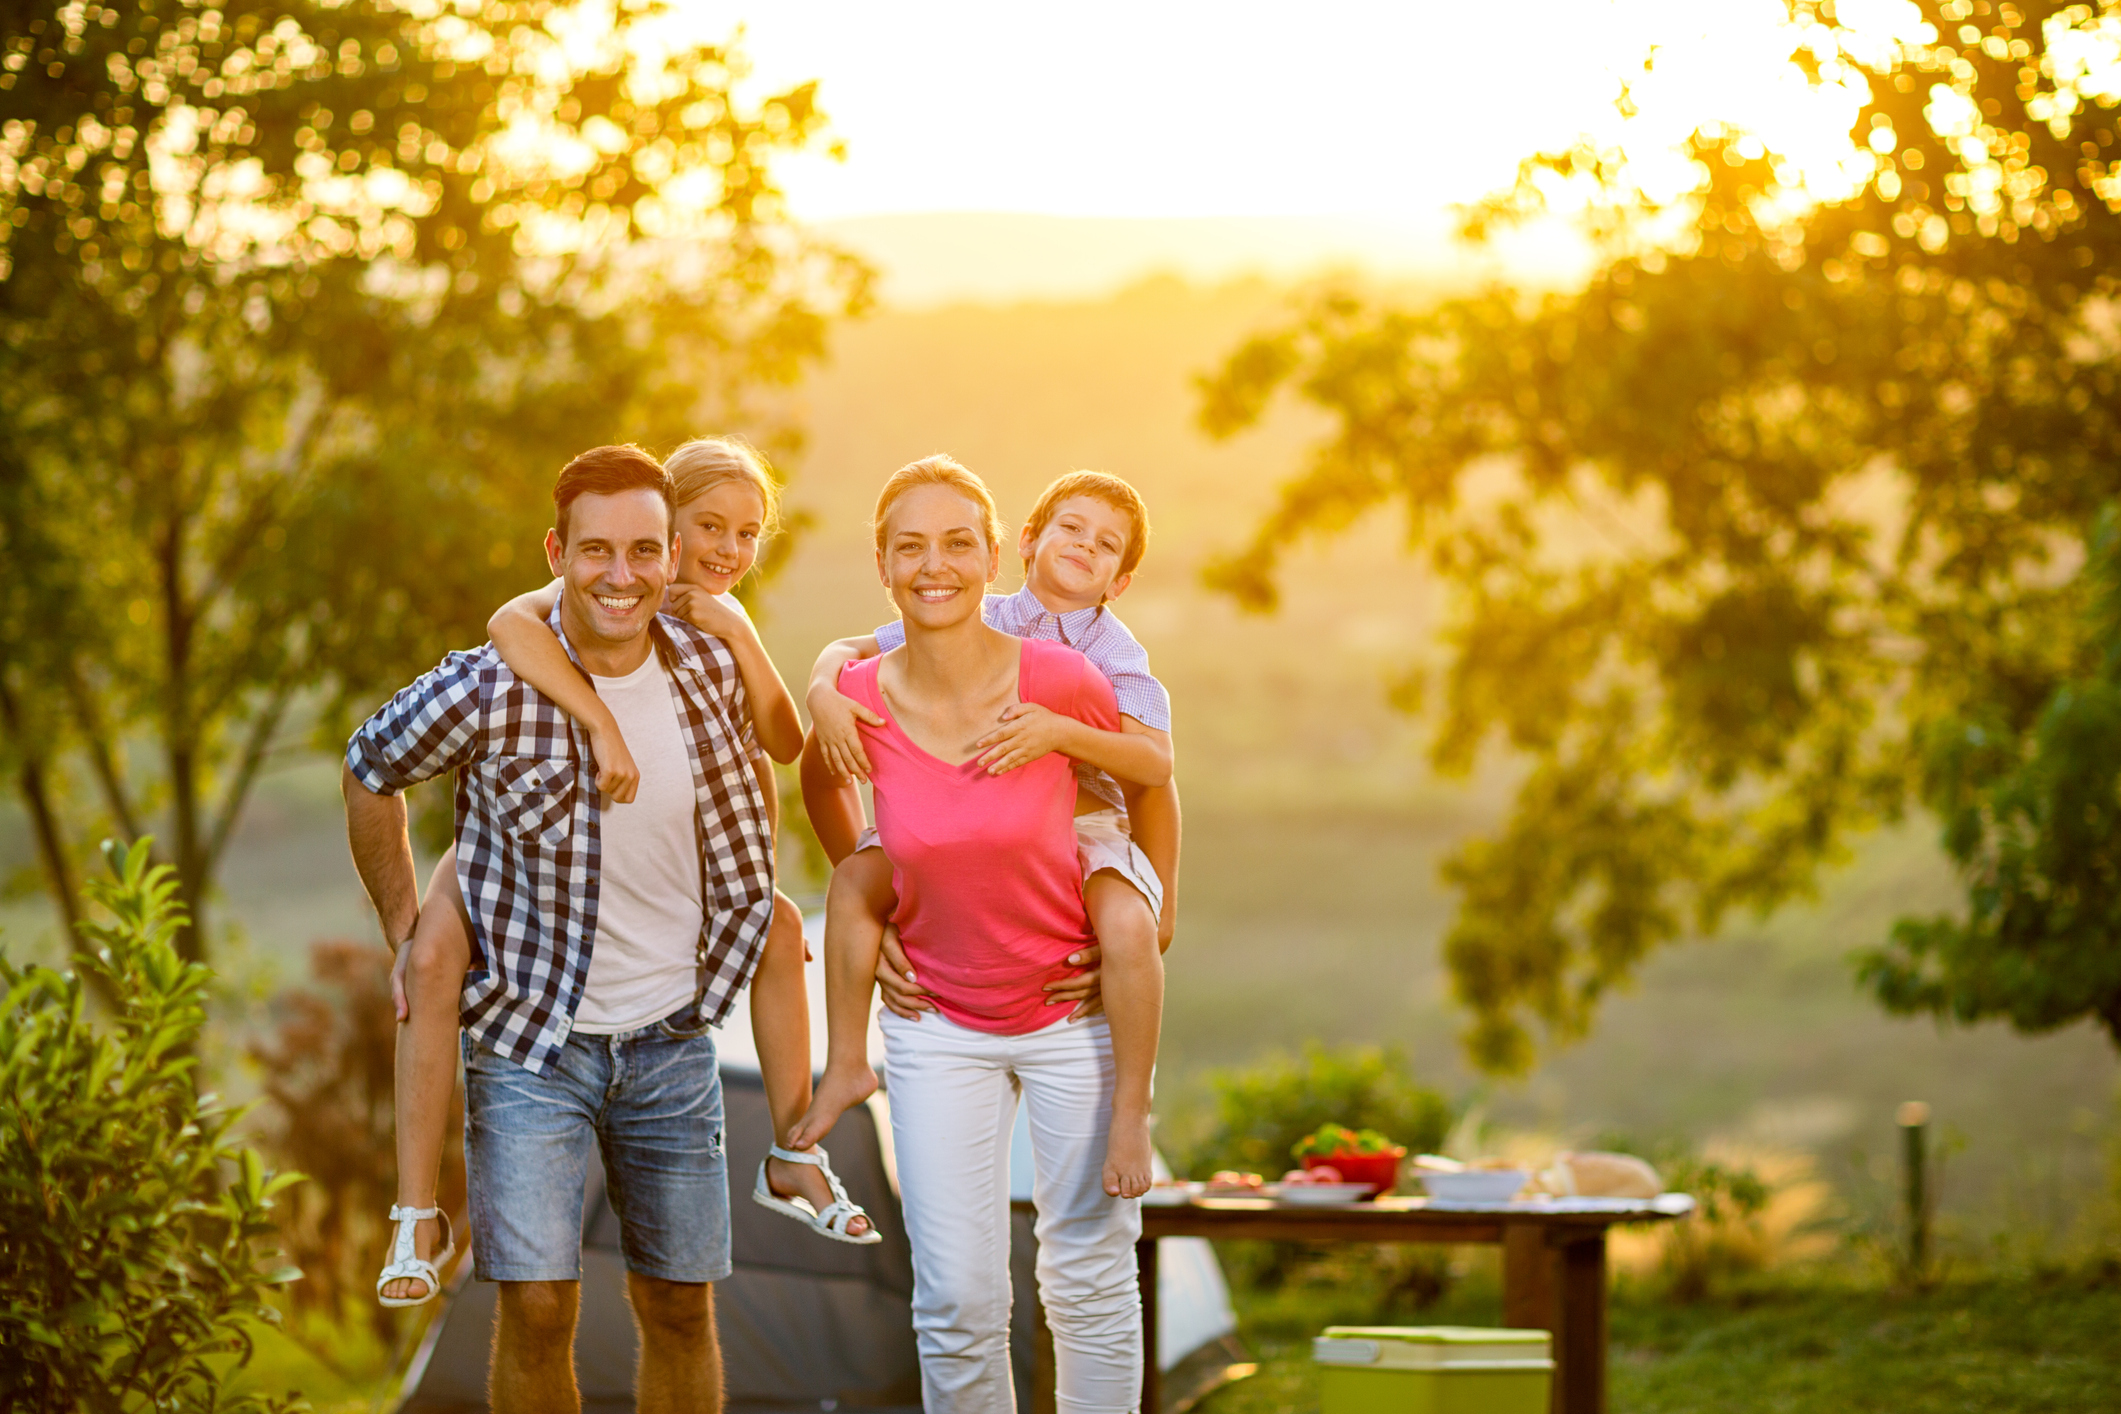 Locum Tenens During the Summer How to Manage Work as a Parent